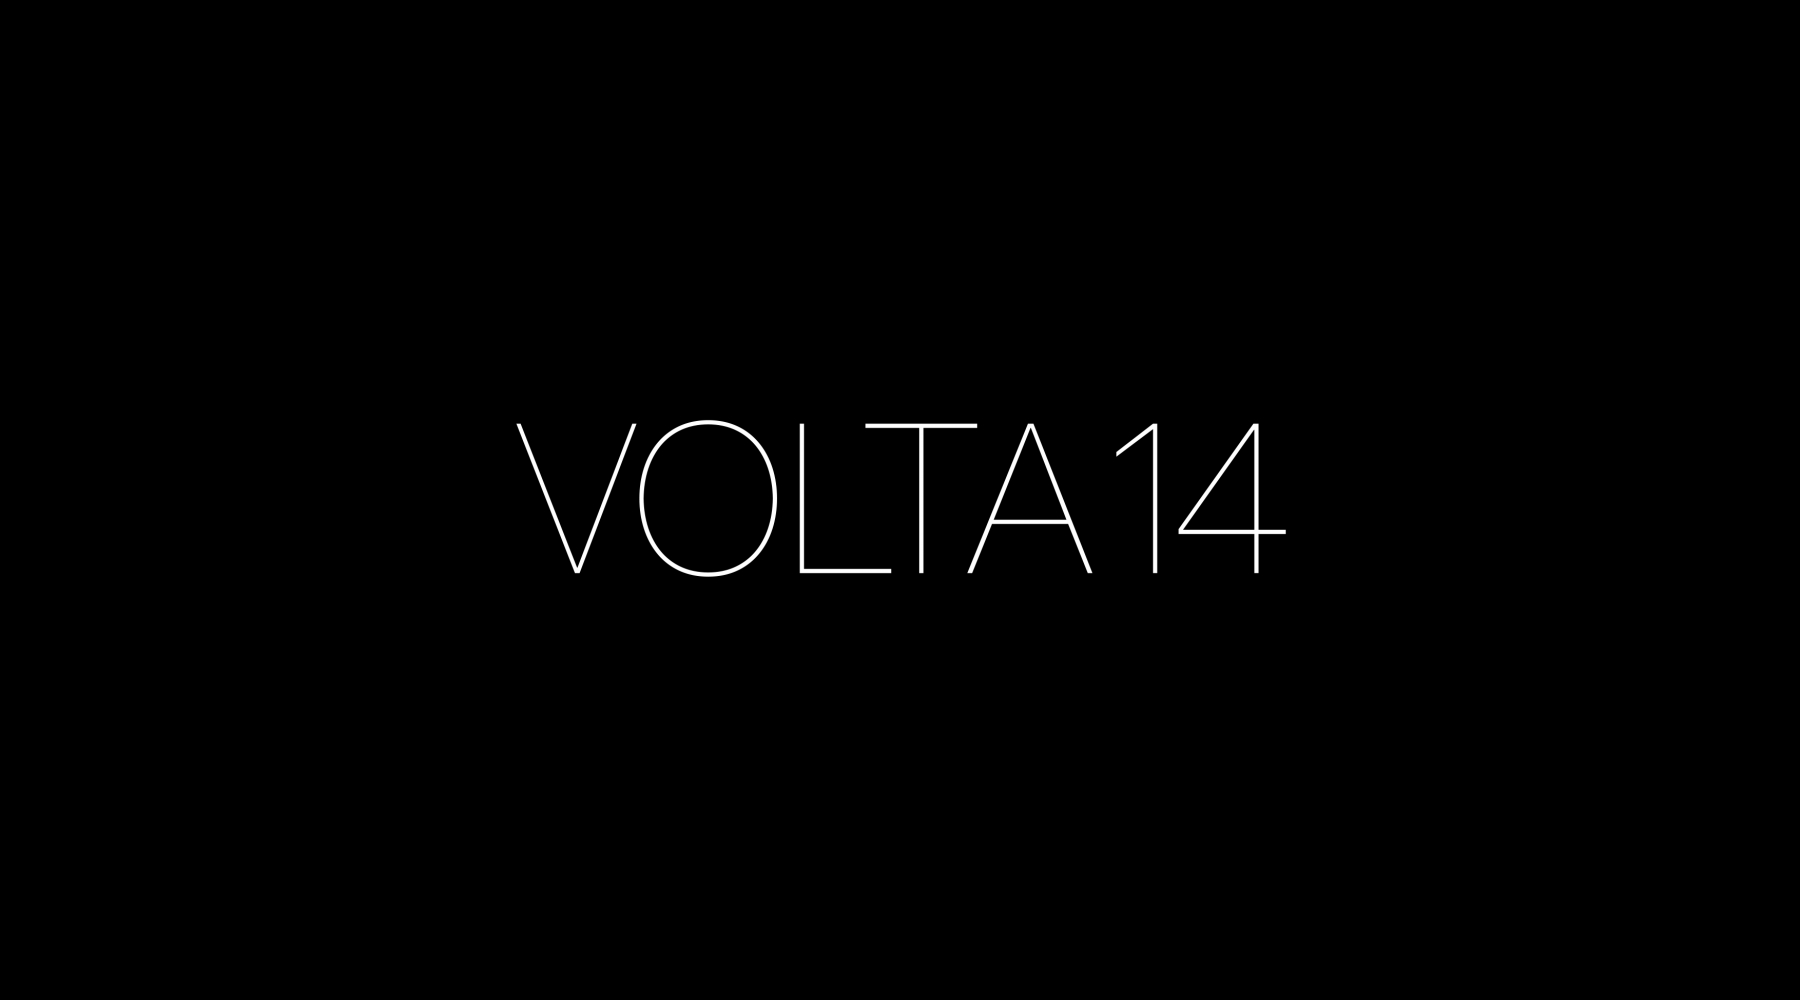 VOLTA 14 | BASEL | JUNE 11 TO 16, 2018